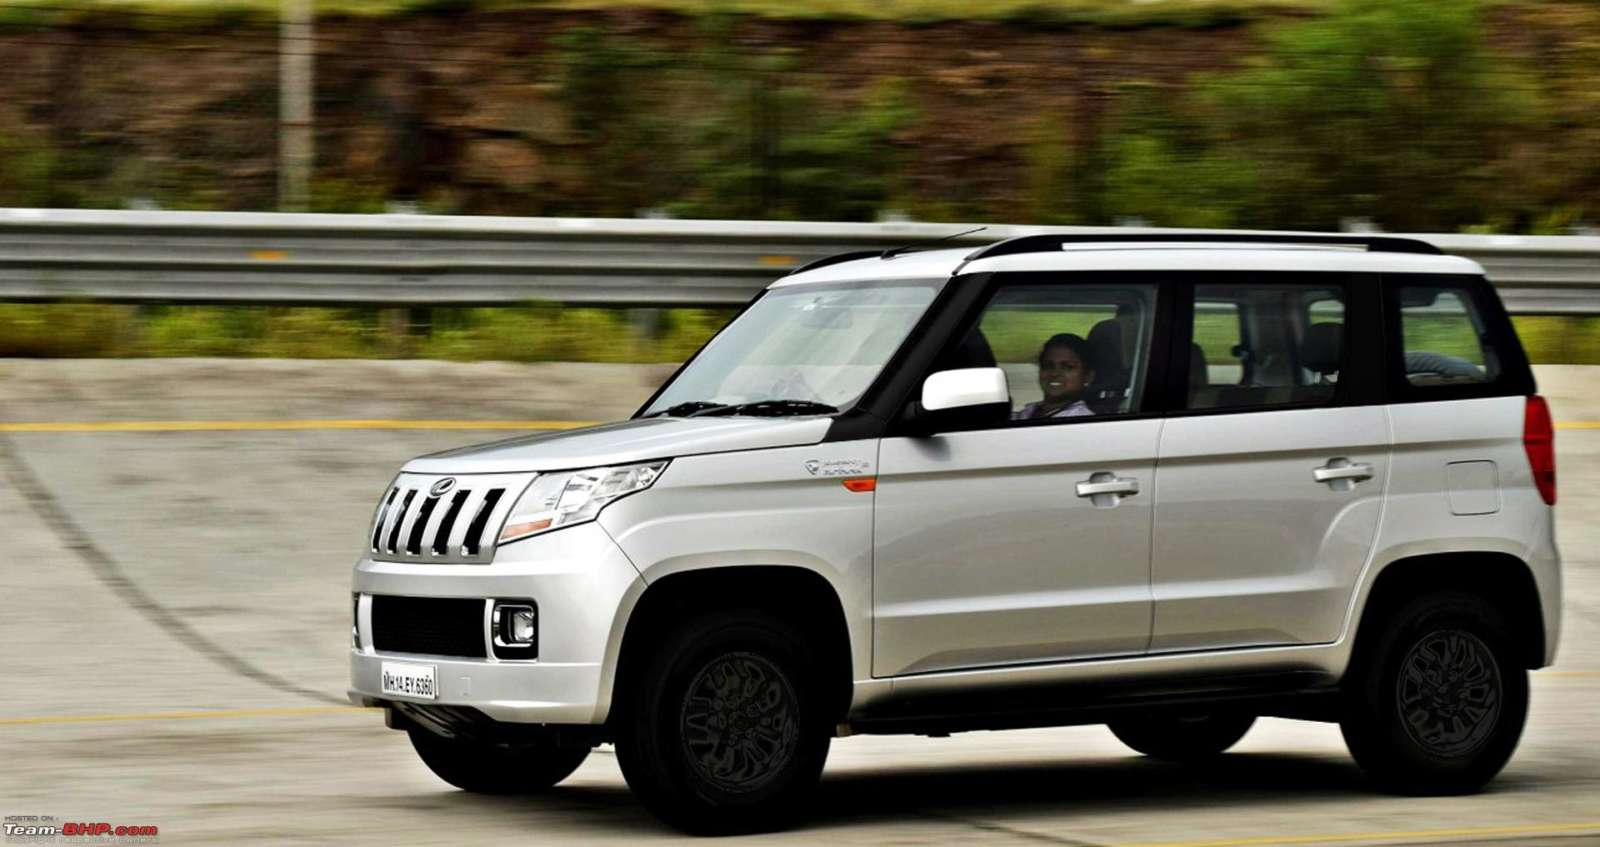 Renders Mahindra Tuv300 Modifications That Make It Look